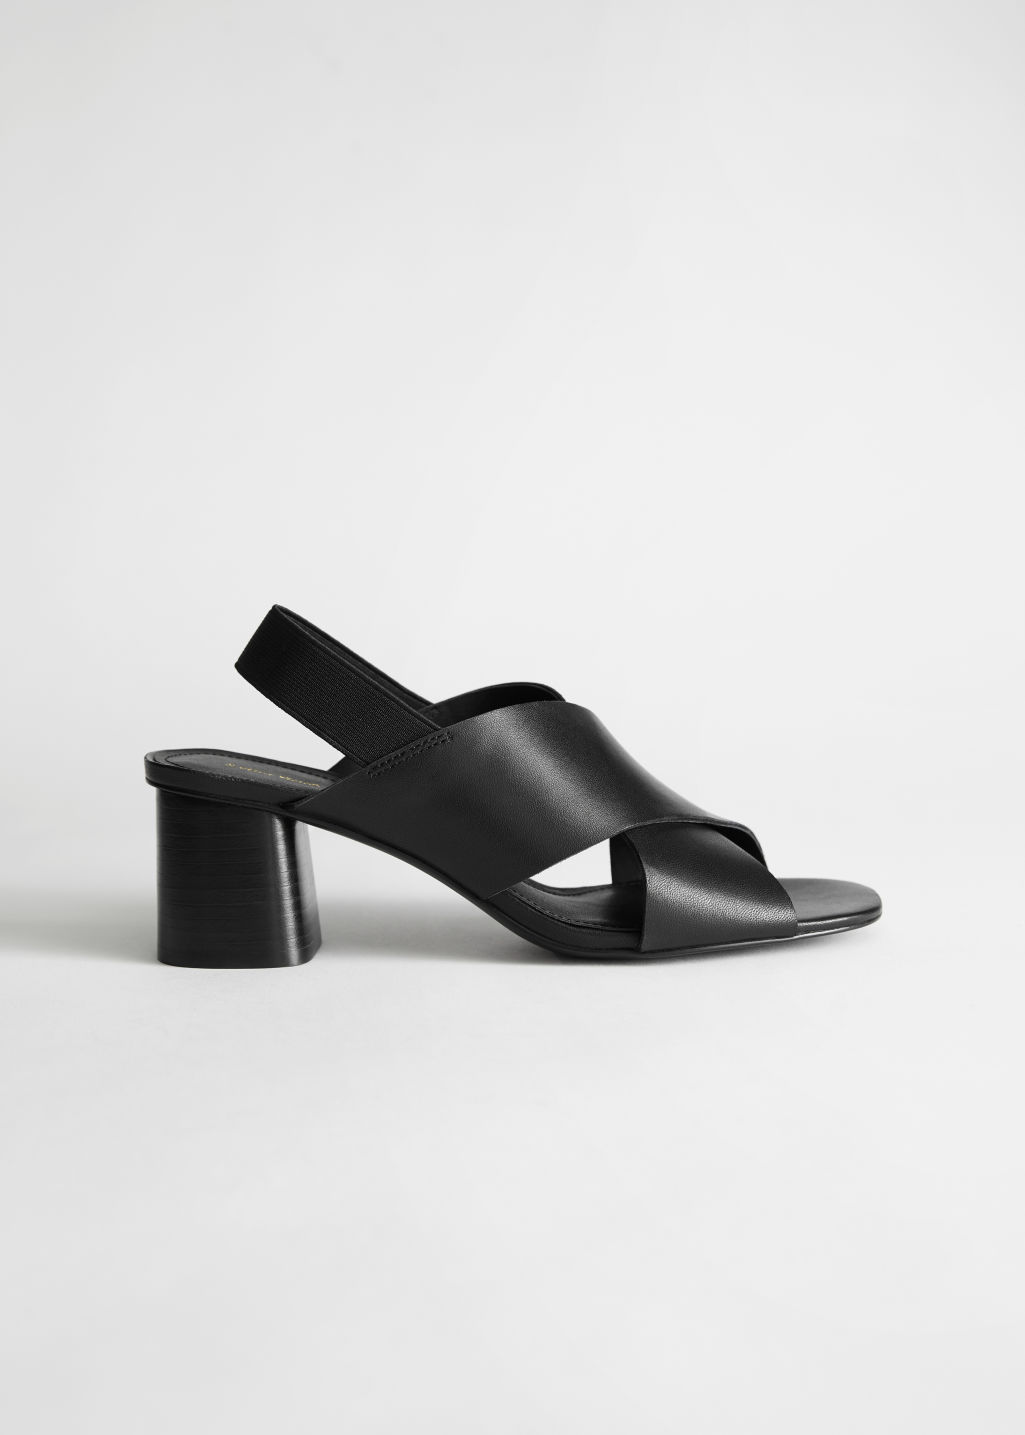 StillLife Left Image of Stories Criss Cross Heeled Leather Sandals in Black